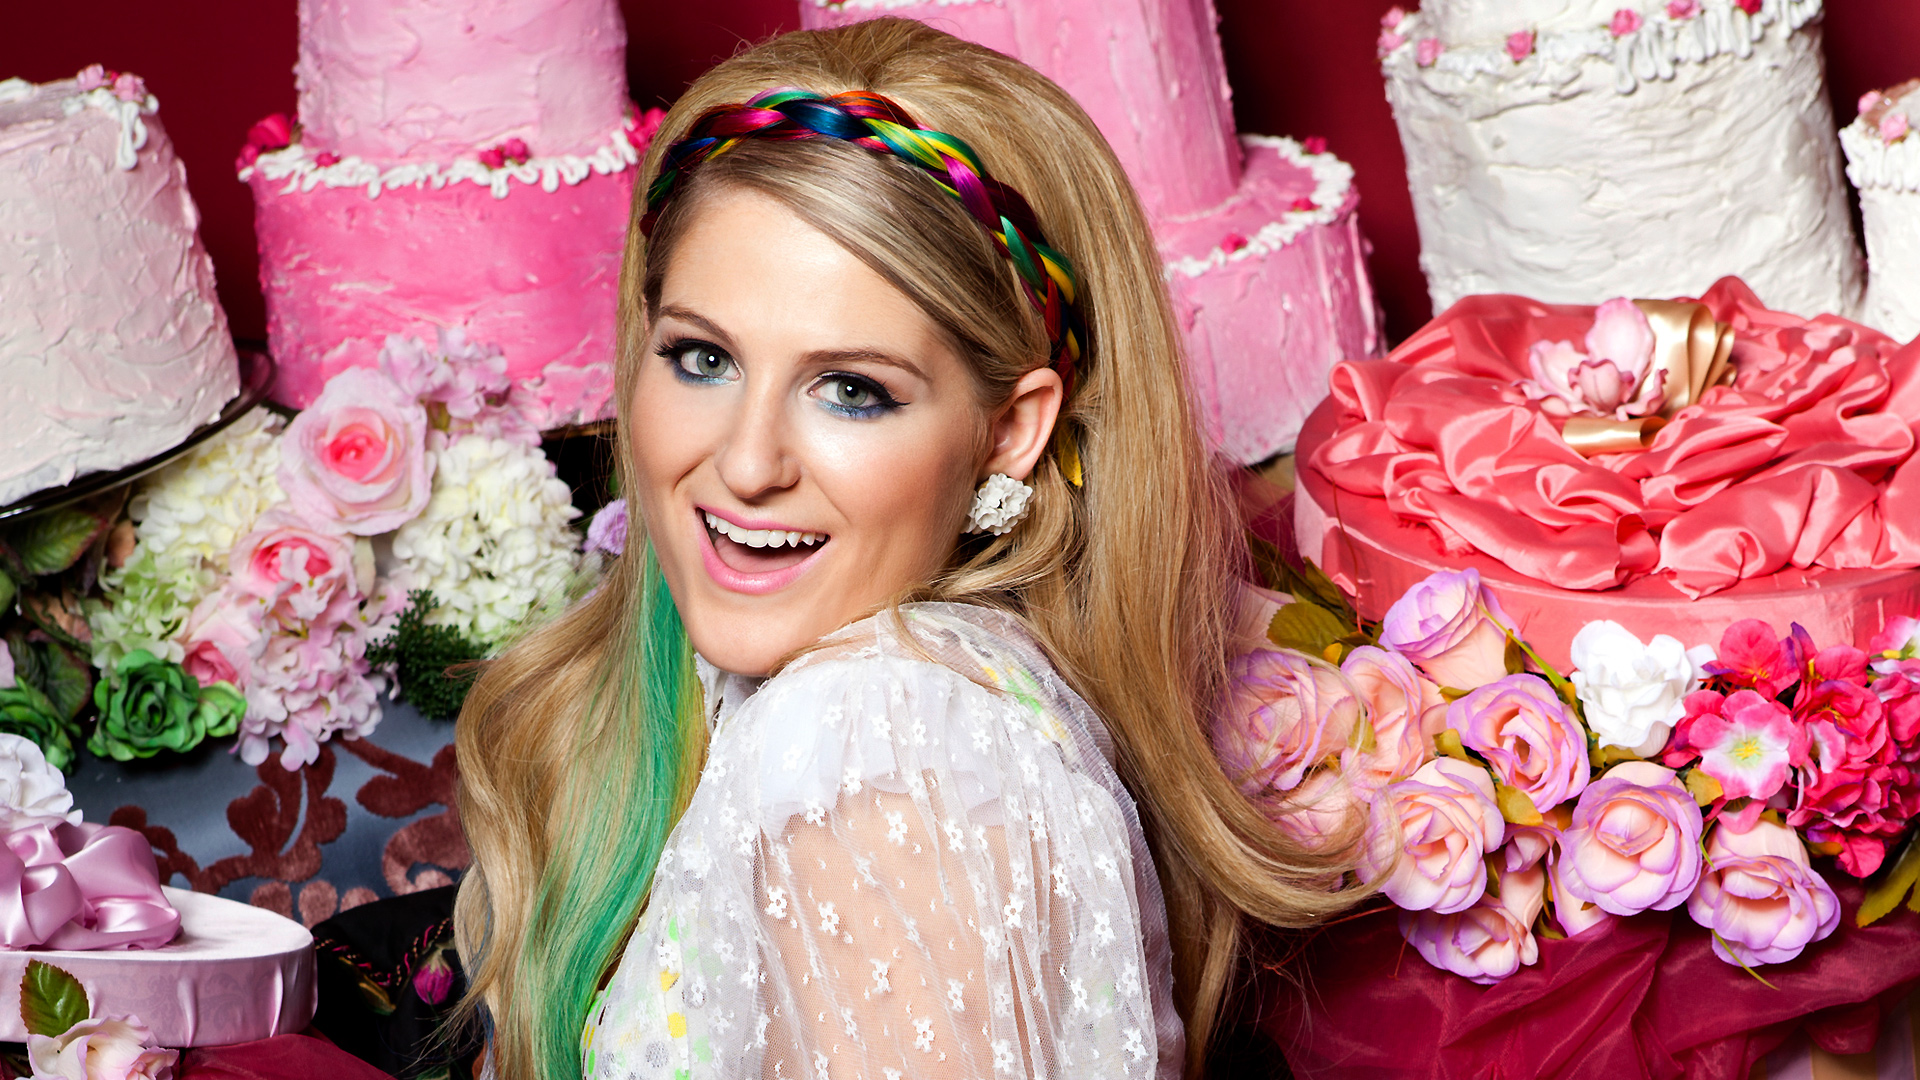 No av Meghan Trainor